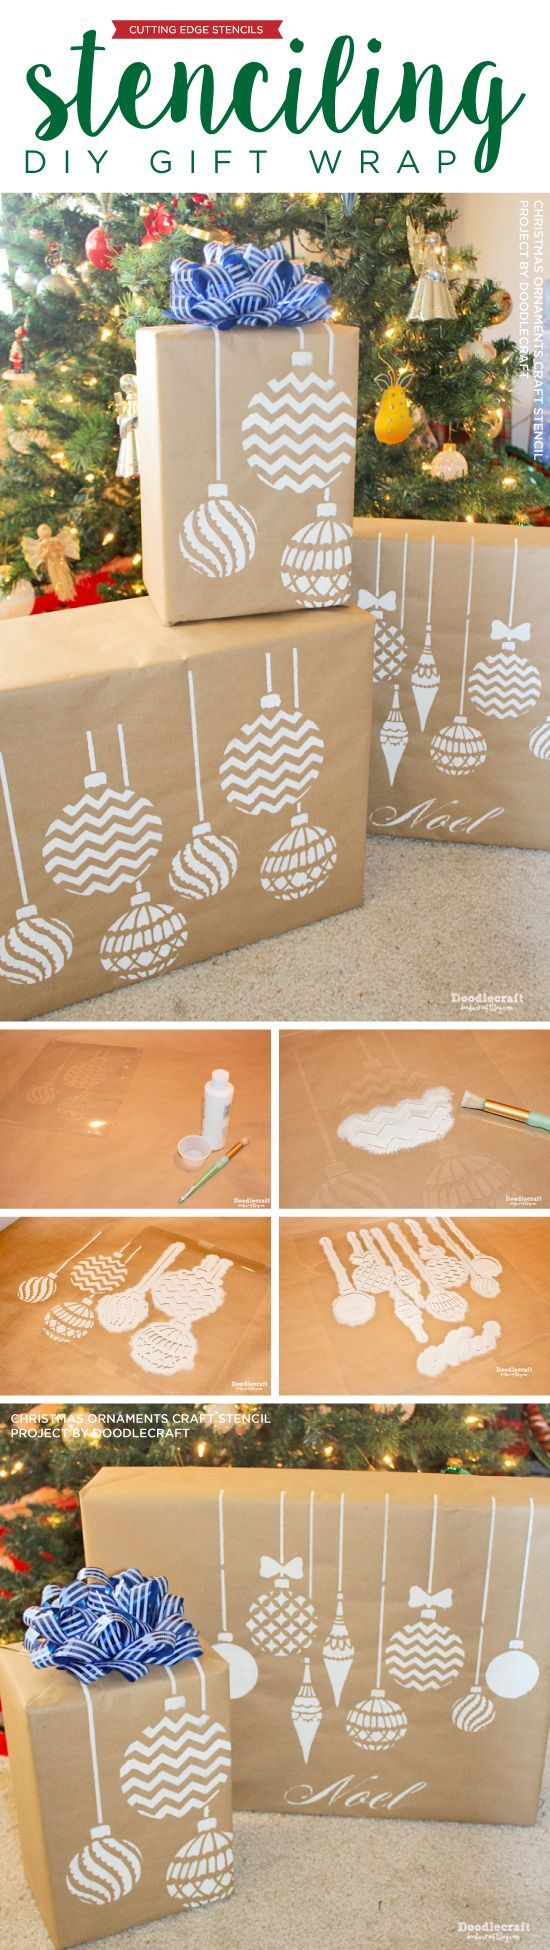 Cutting Edge Stencils shares how to stencil DIY gift wrap using Christmas Ornaments Stencil and Kraft paper. http://www.cuttingedgestencils.com/diy-christmas-decor-craft-and-furniture-stencils.html?utm_source=JCG&utm_medium=Pinterest&utm_campaign=Christmas%20Ornaments%20Craft%20Stencil: